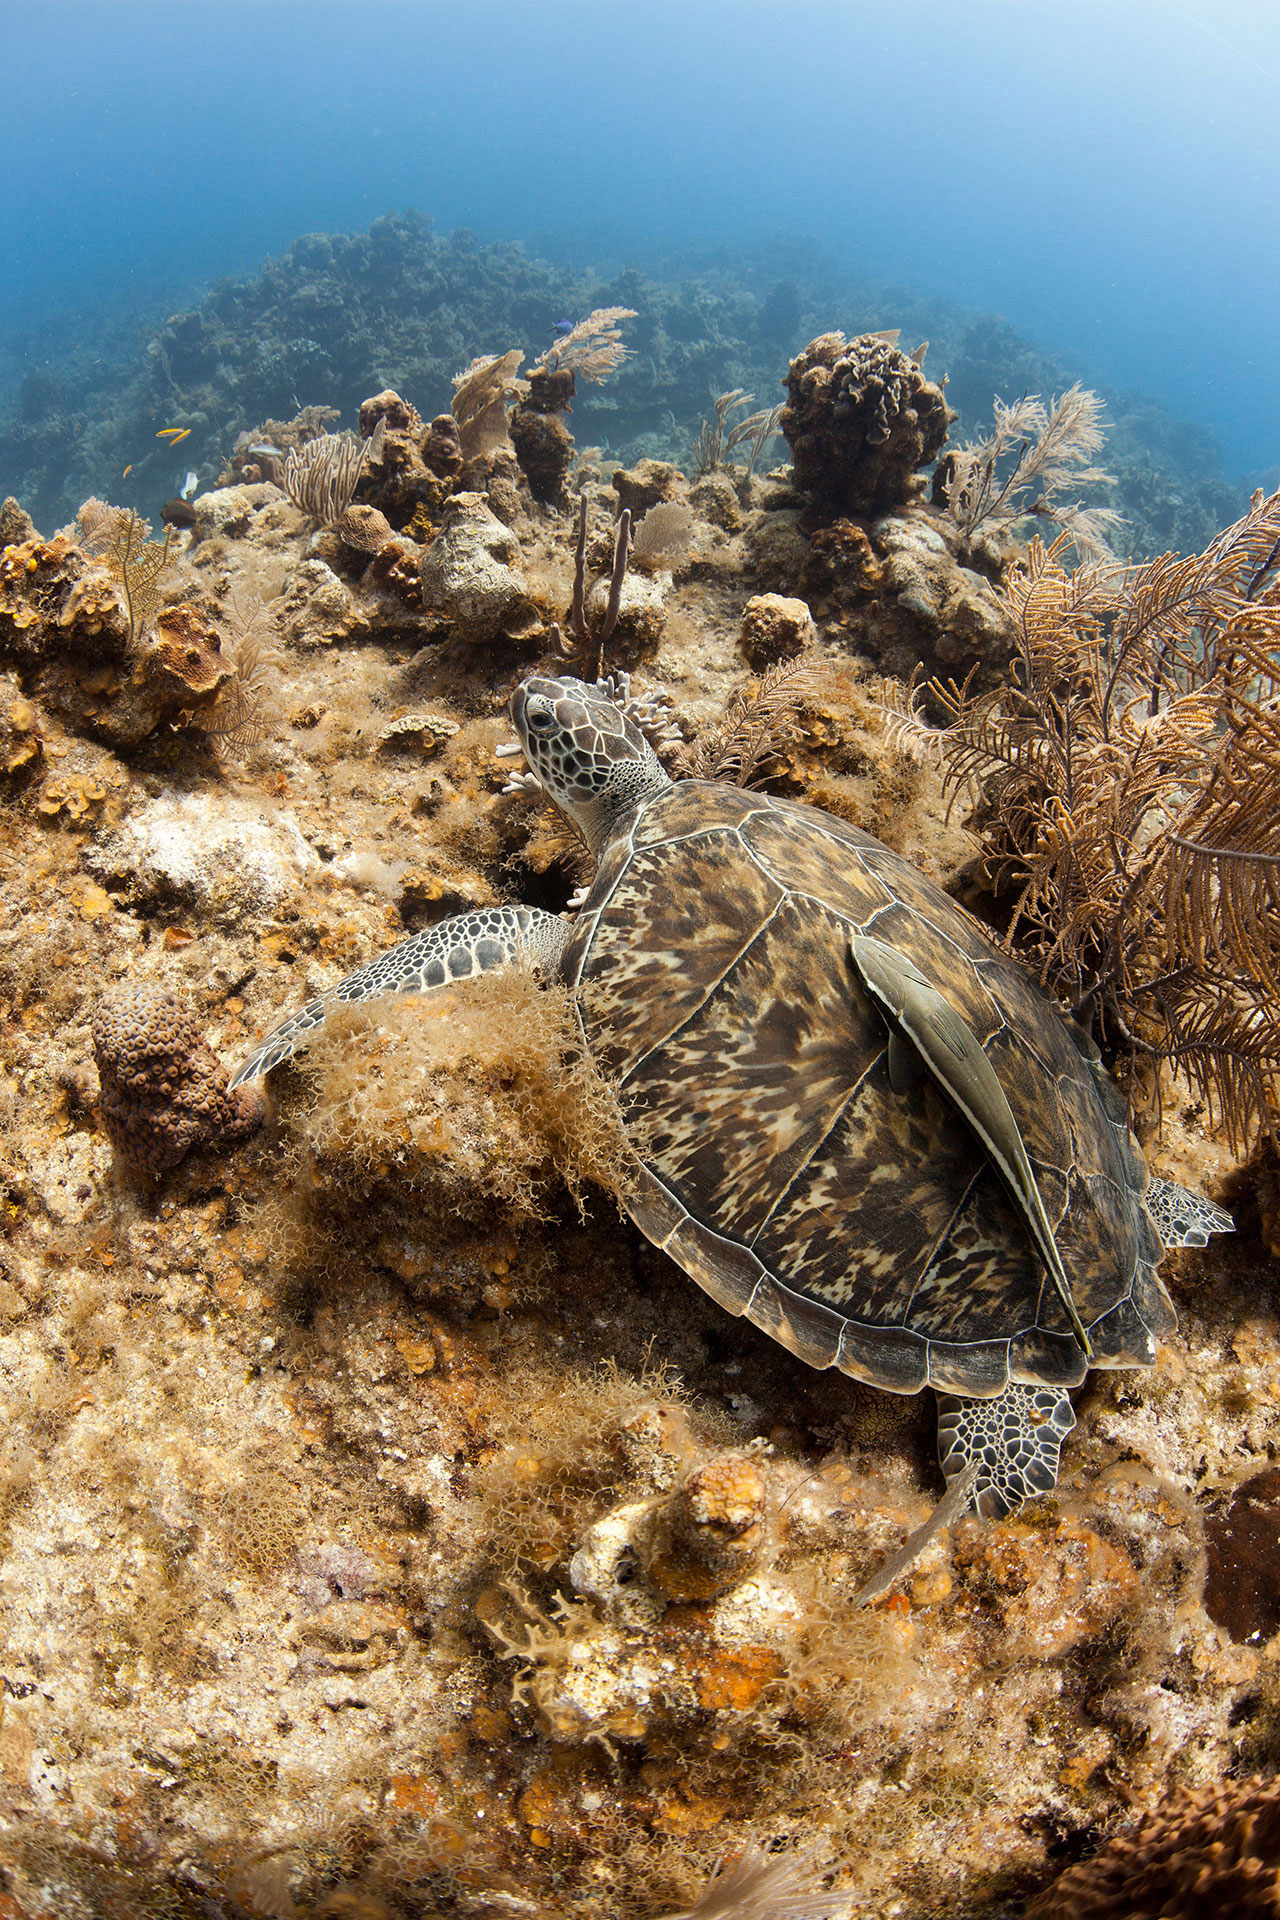 A hawksbill turtle rests on a reef in the Caribbean